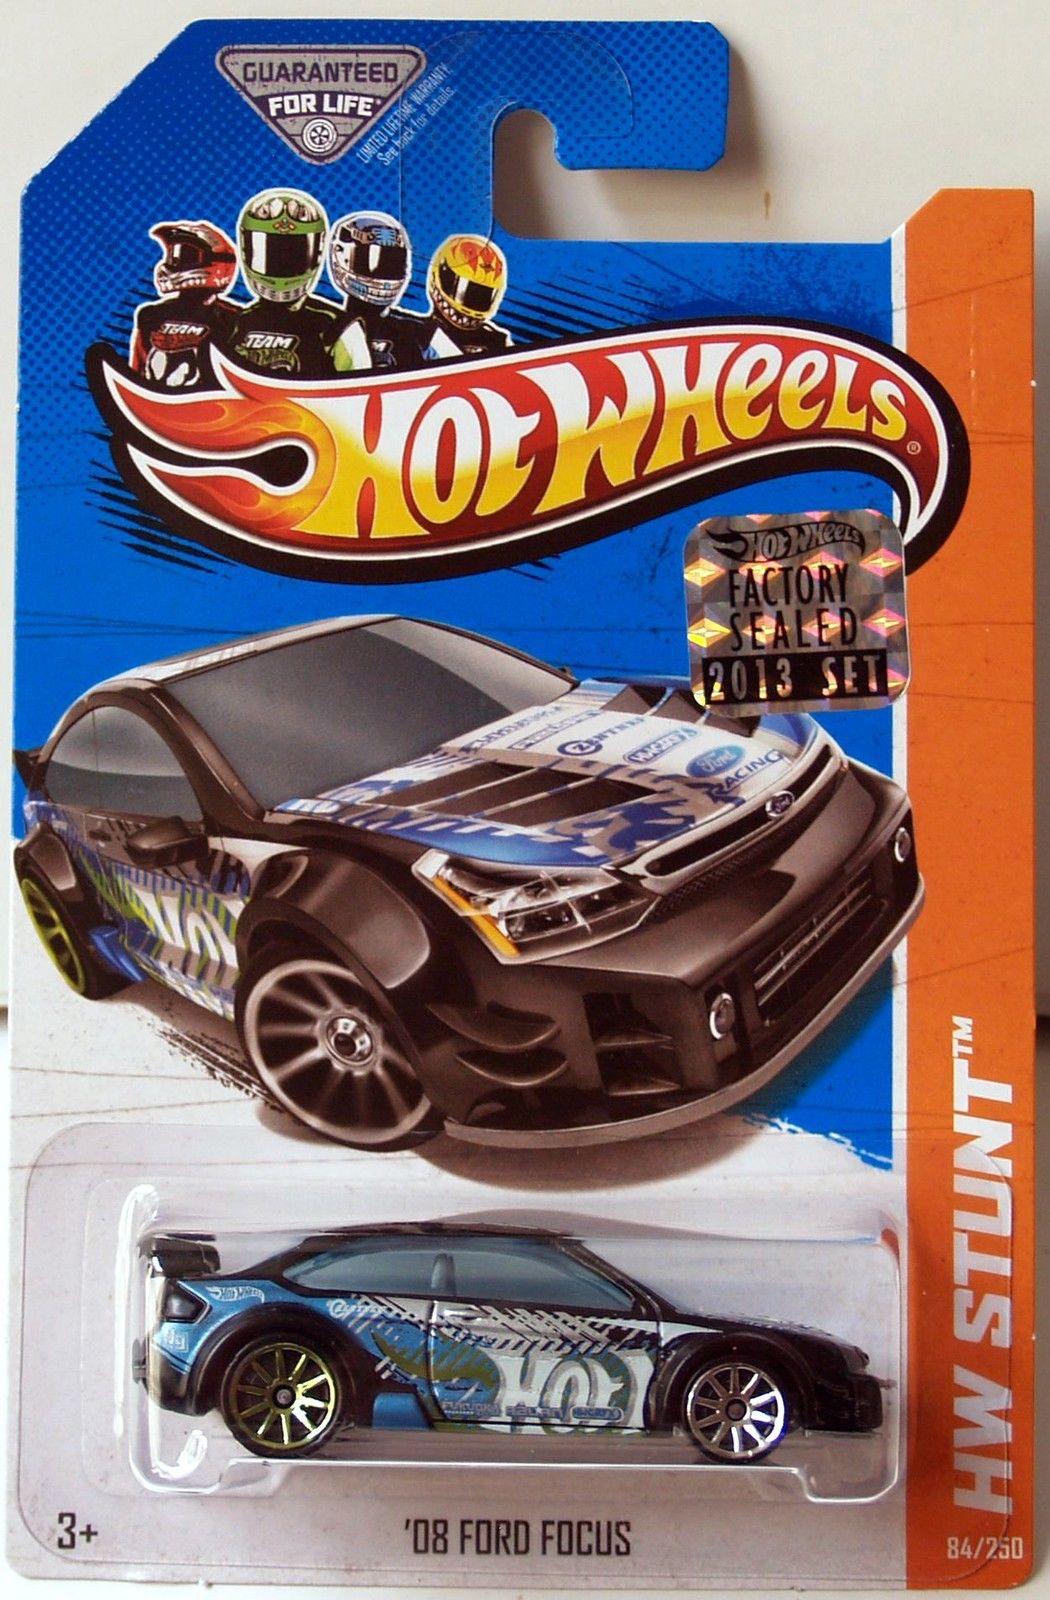 HOT WHEELS 2013 HW STUNT DRIFT RACE '08 FORD FOCUS FACTORY SEALED